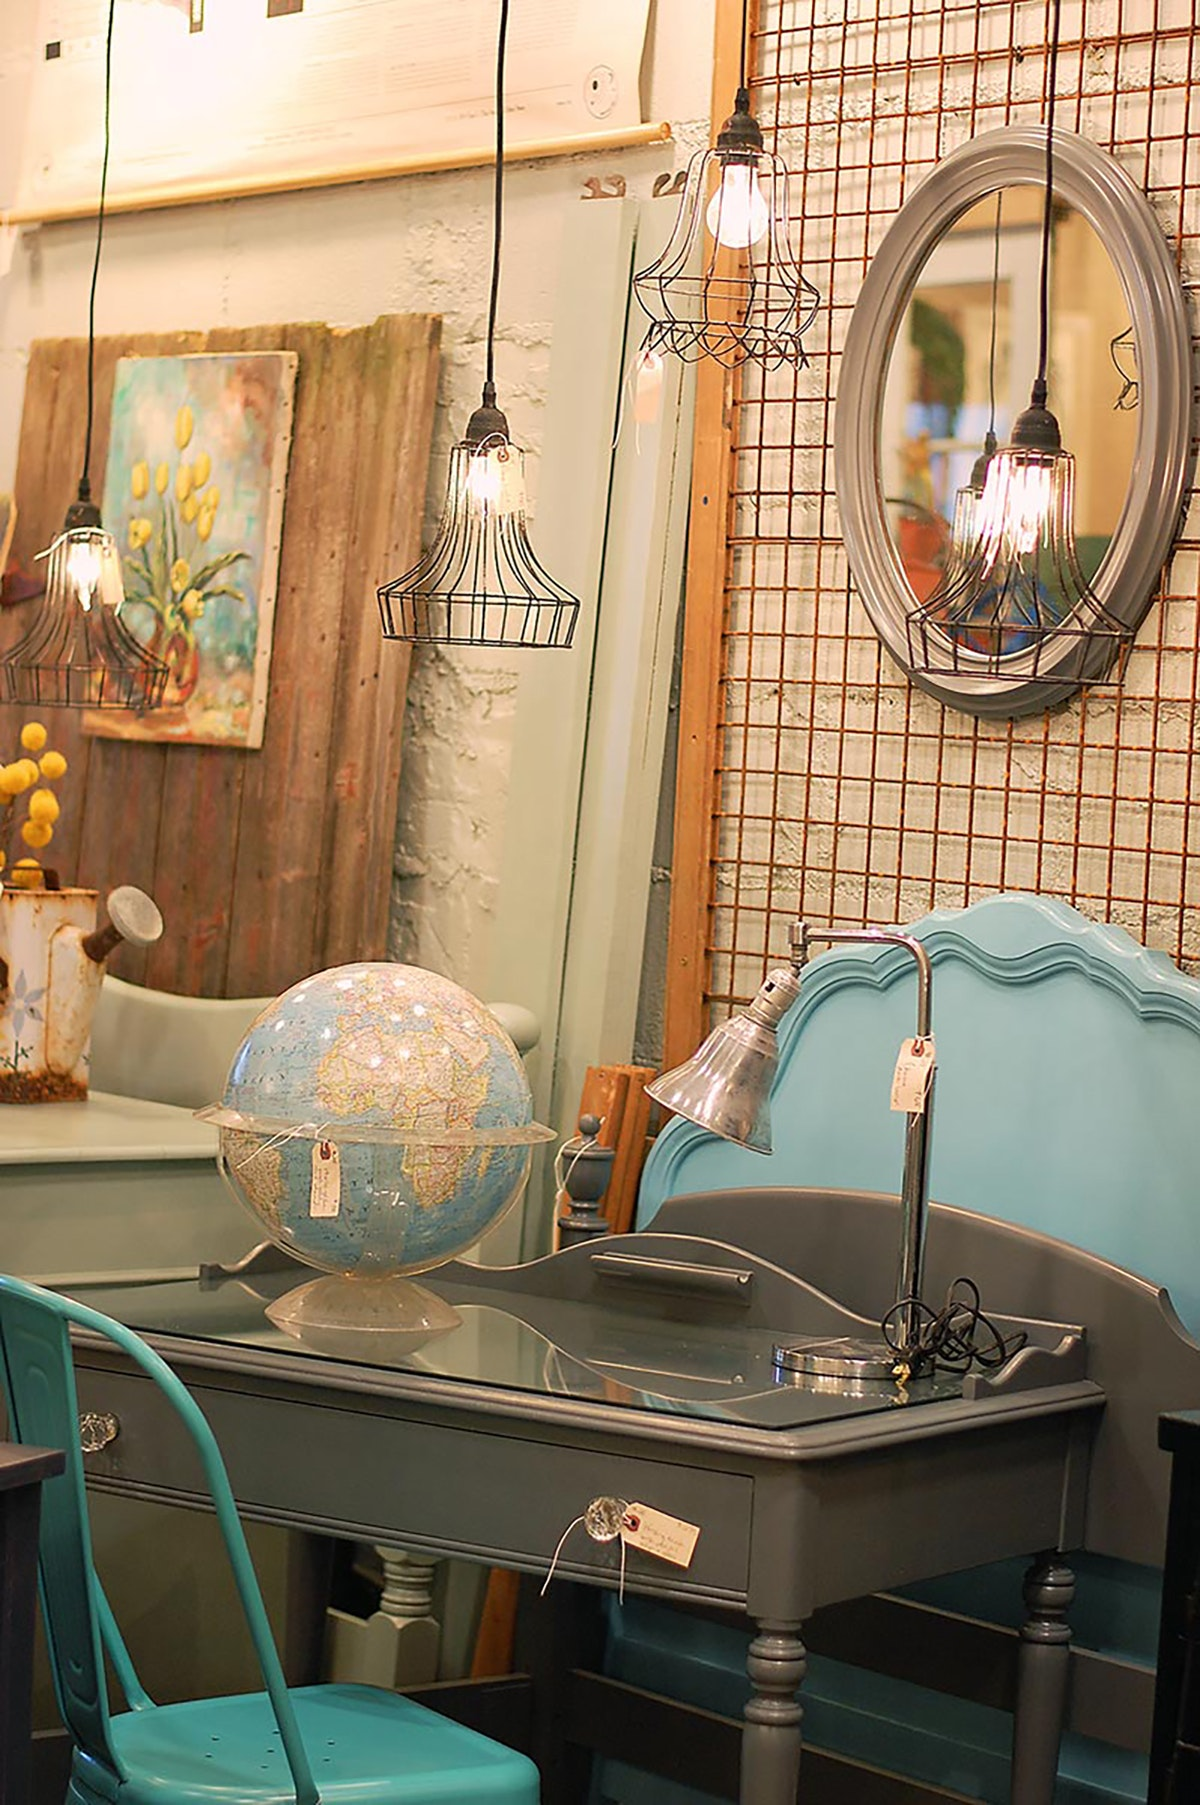 Blue Door Antiques & Elements - On The Grid : Blue Door Antiques & Elements